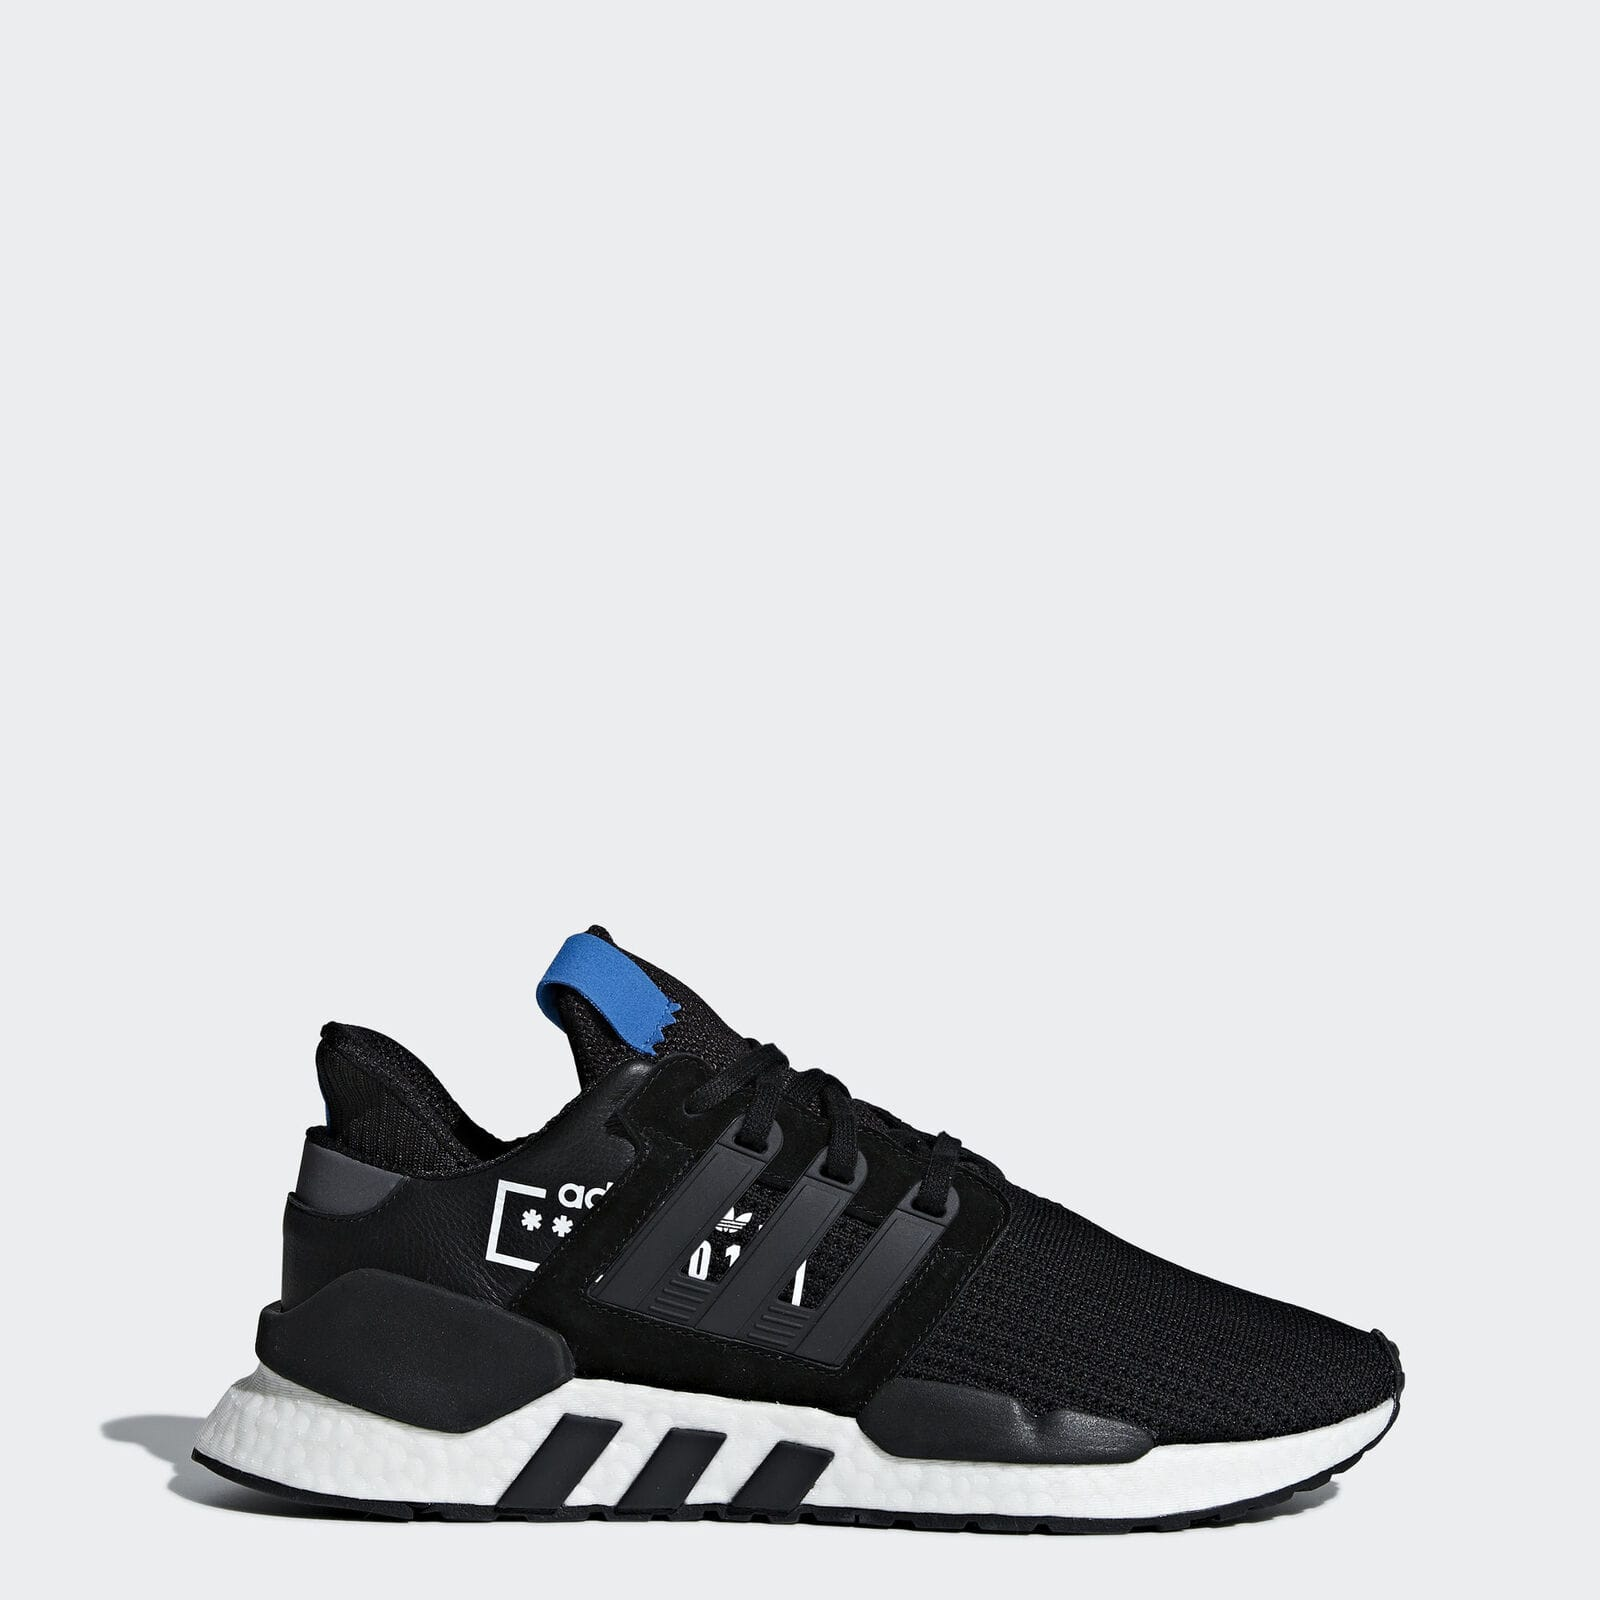 pretty nice b493c ec3ad Adidas EQT Support 9118 Boost Mens Shoes 80 + Free Shipping